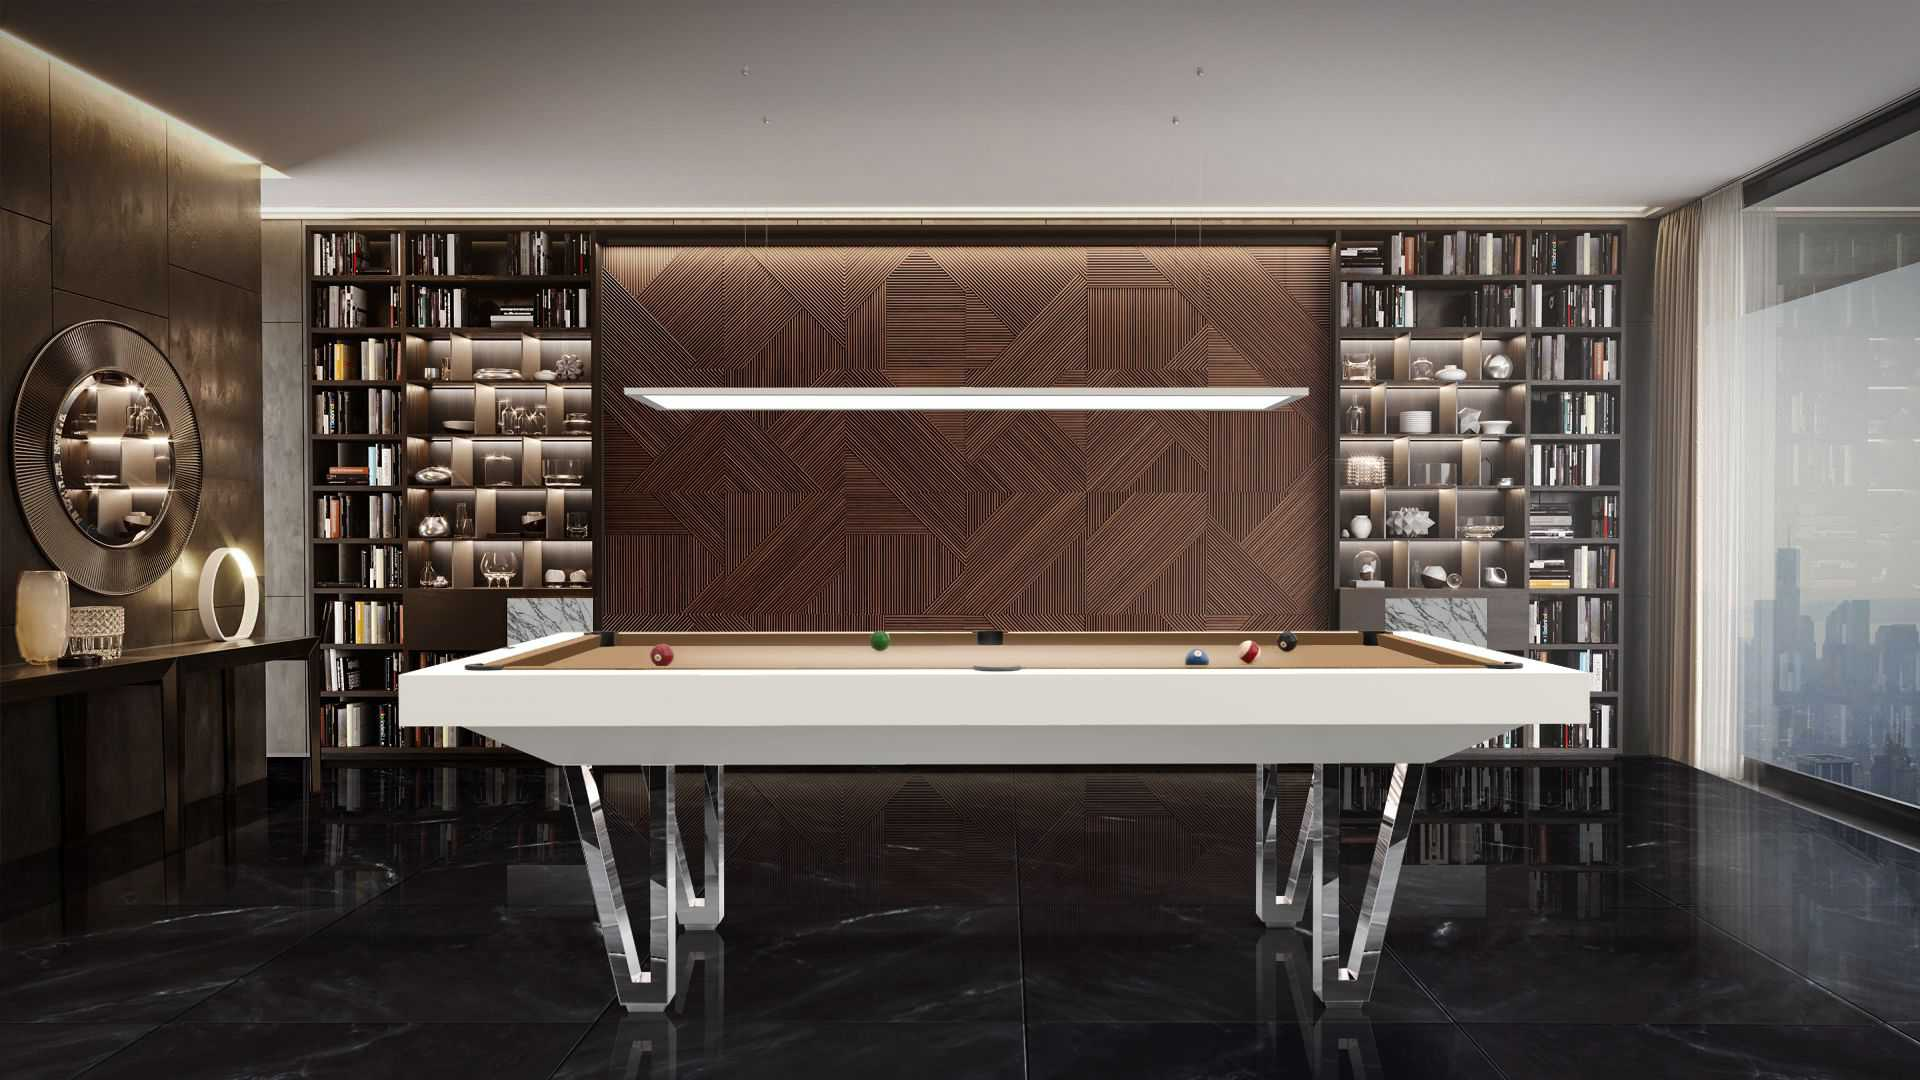 Pool Table mod. Cayenne Two Lacquered metal bases 1